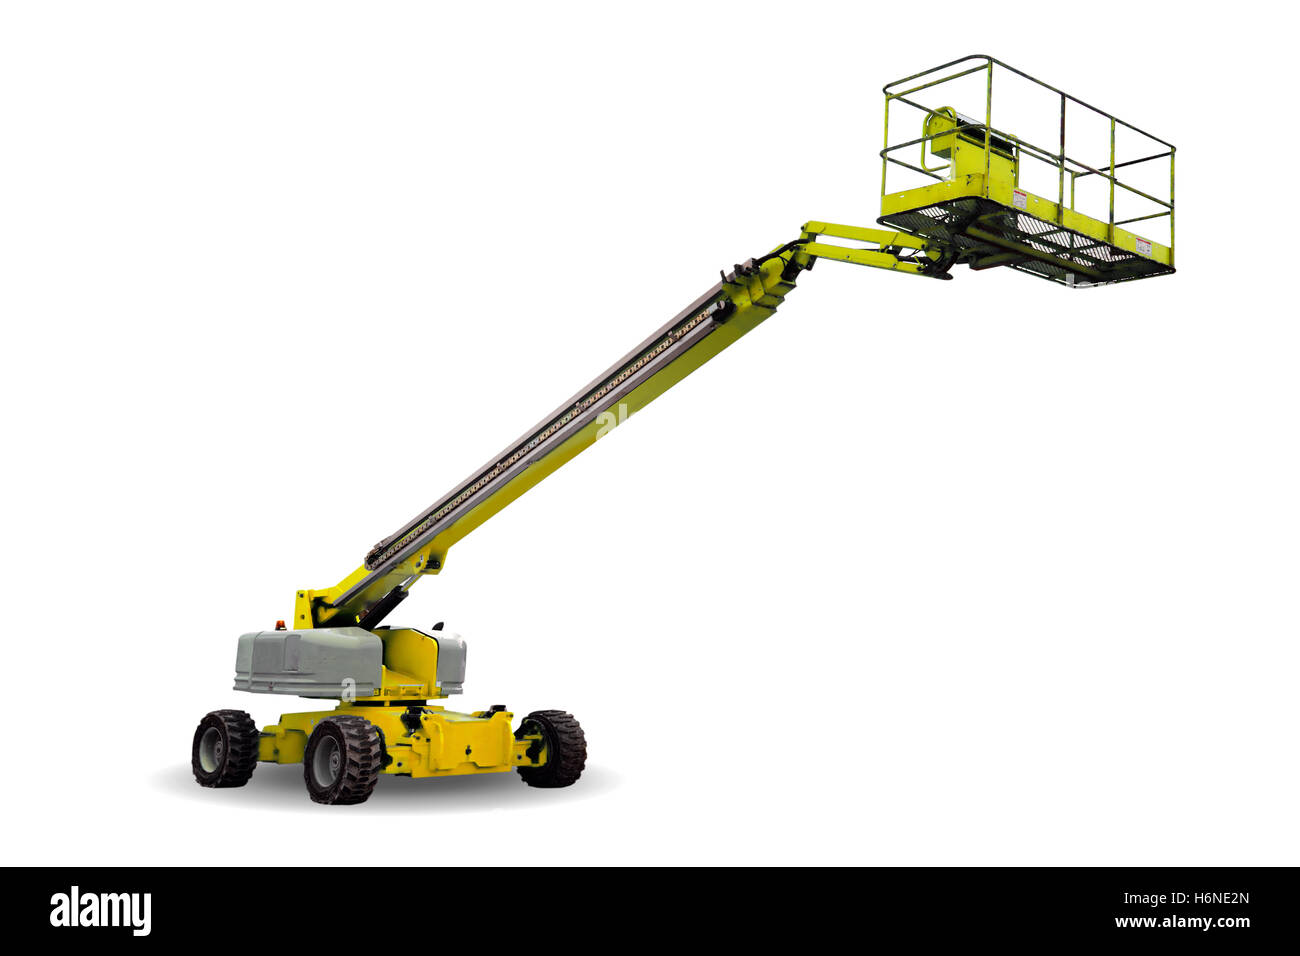 elevator lift isolated industry industrial machinery vehicle work factory platform box equipment hydraulic lifter - Stock Image